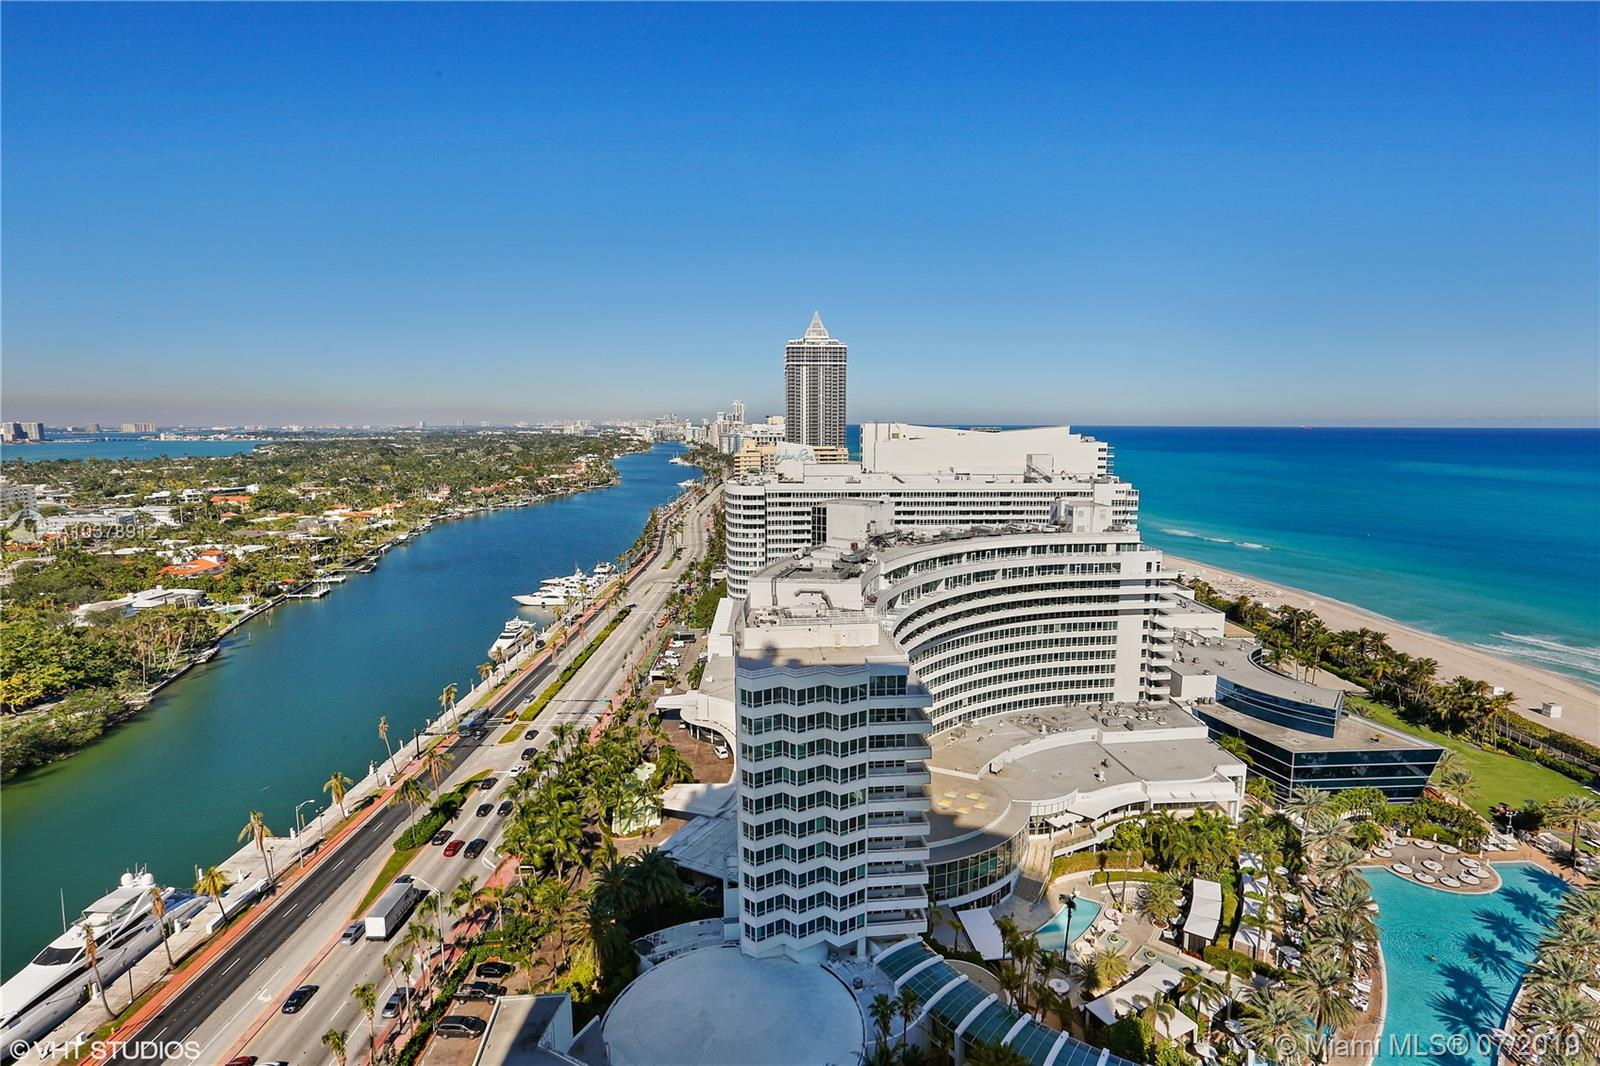 Fontainebleau Tresor #240507 - 4401 COLLINS AVE #240507, Miami Beach, FL 33140